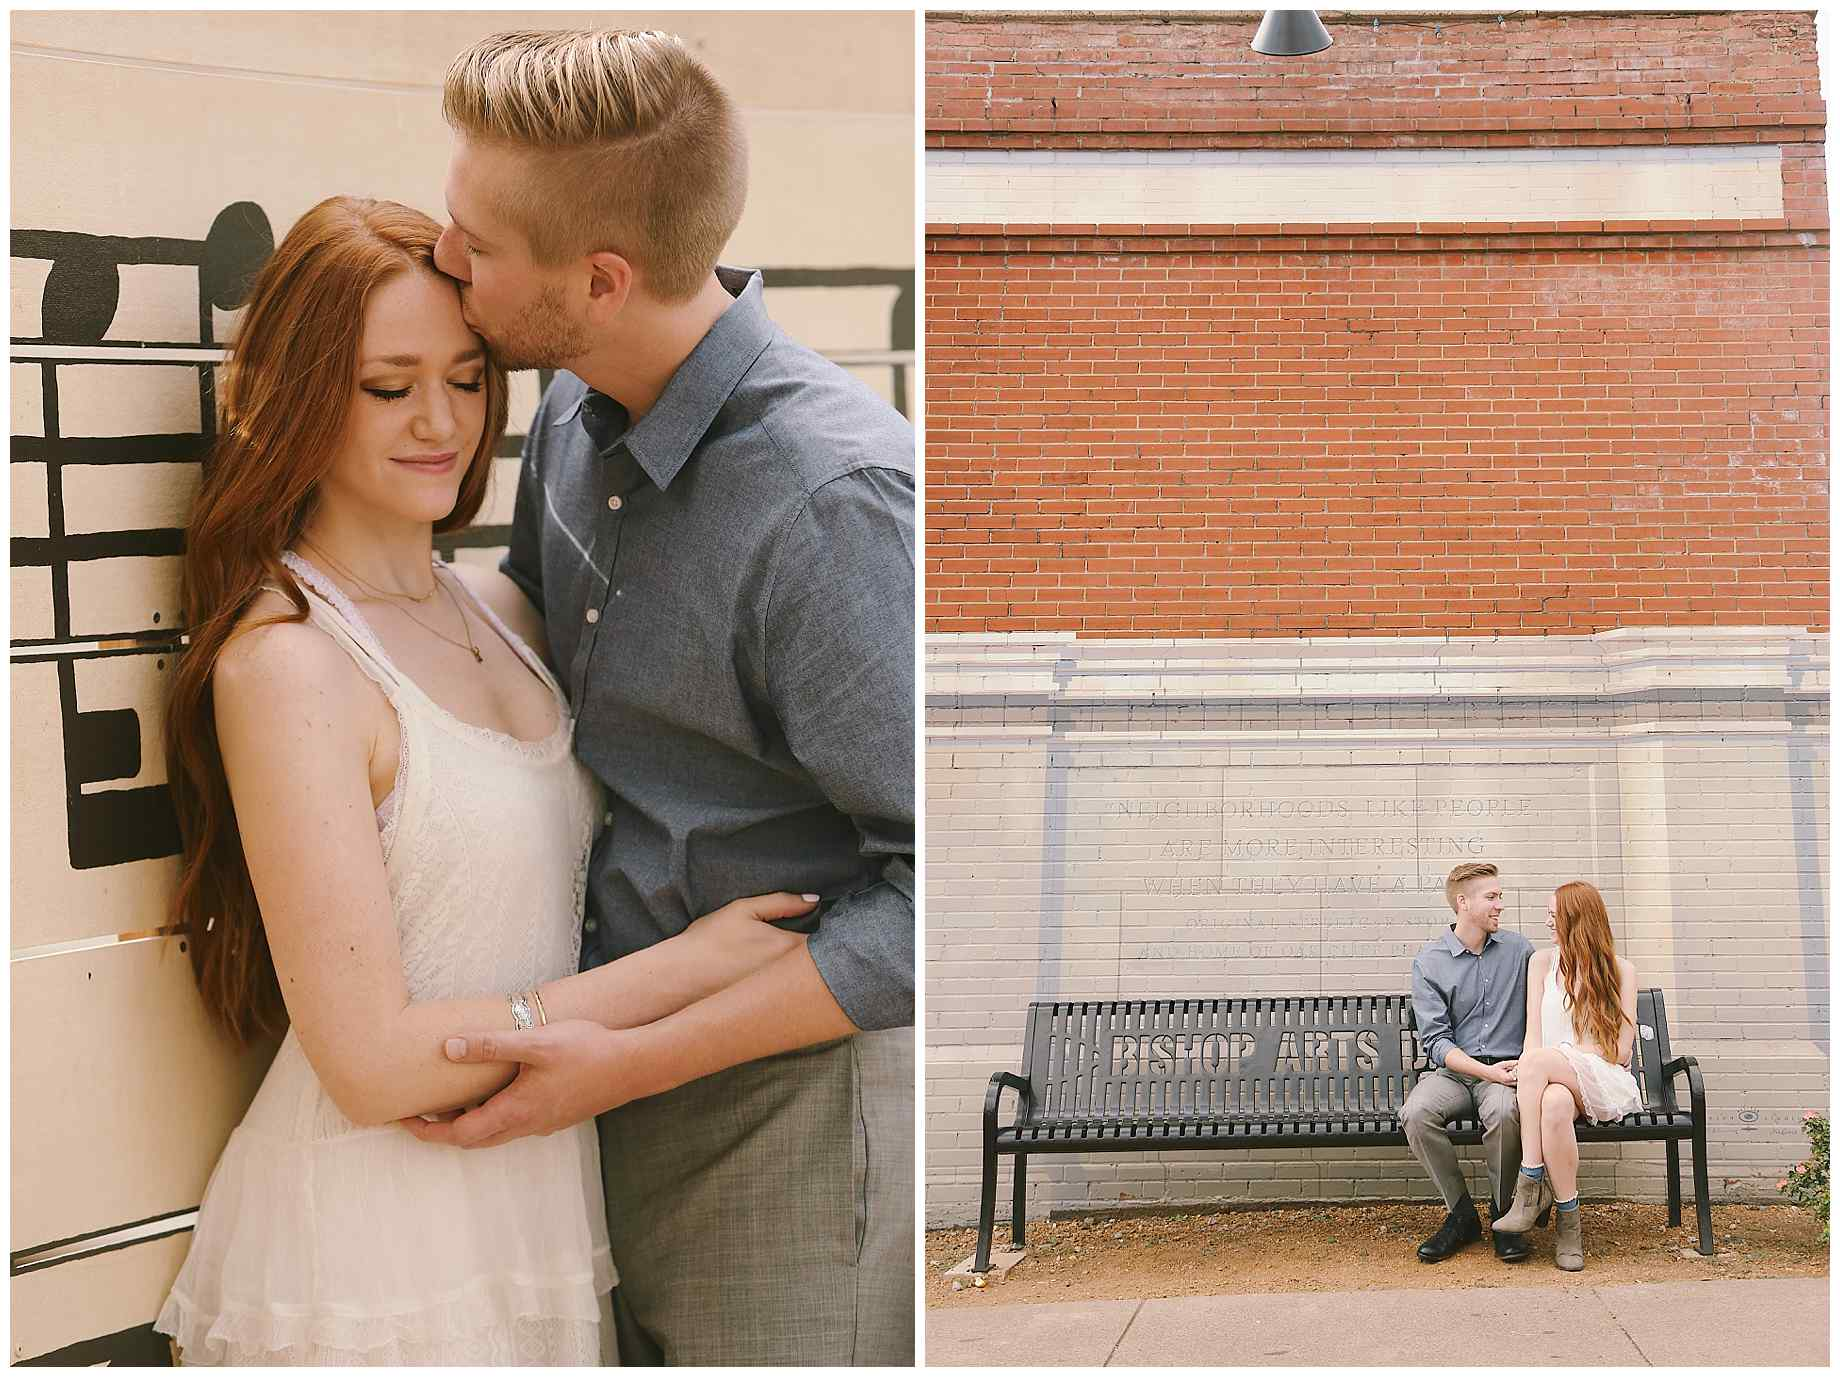 dallas-bishop-arts-district-engagement-photos-03